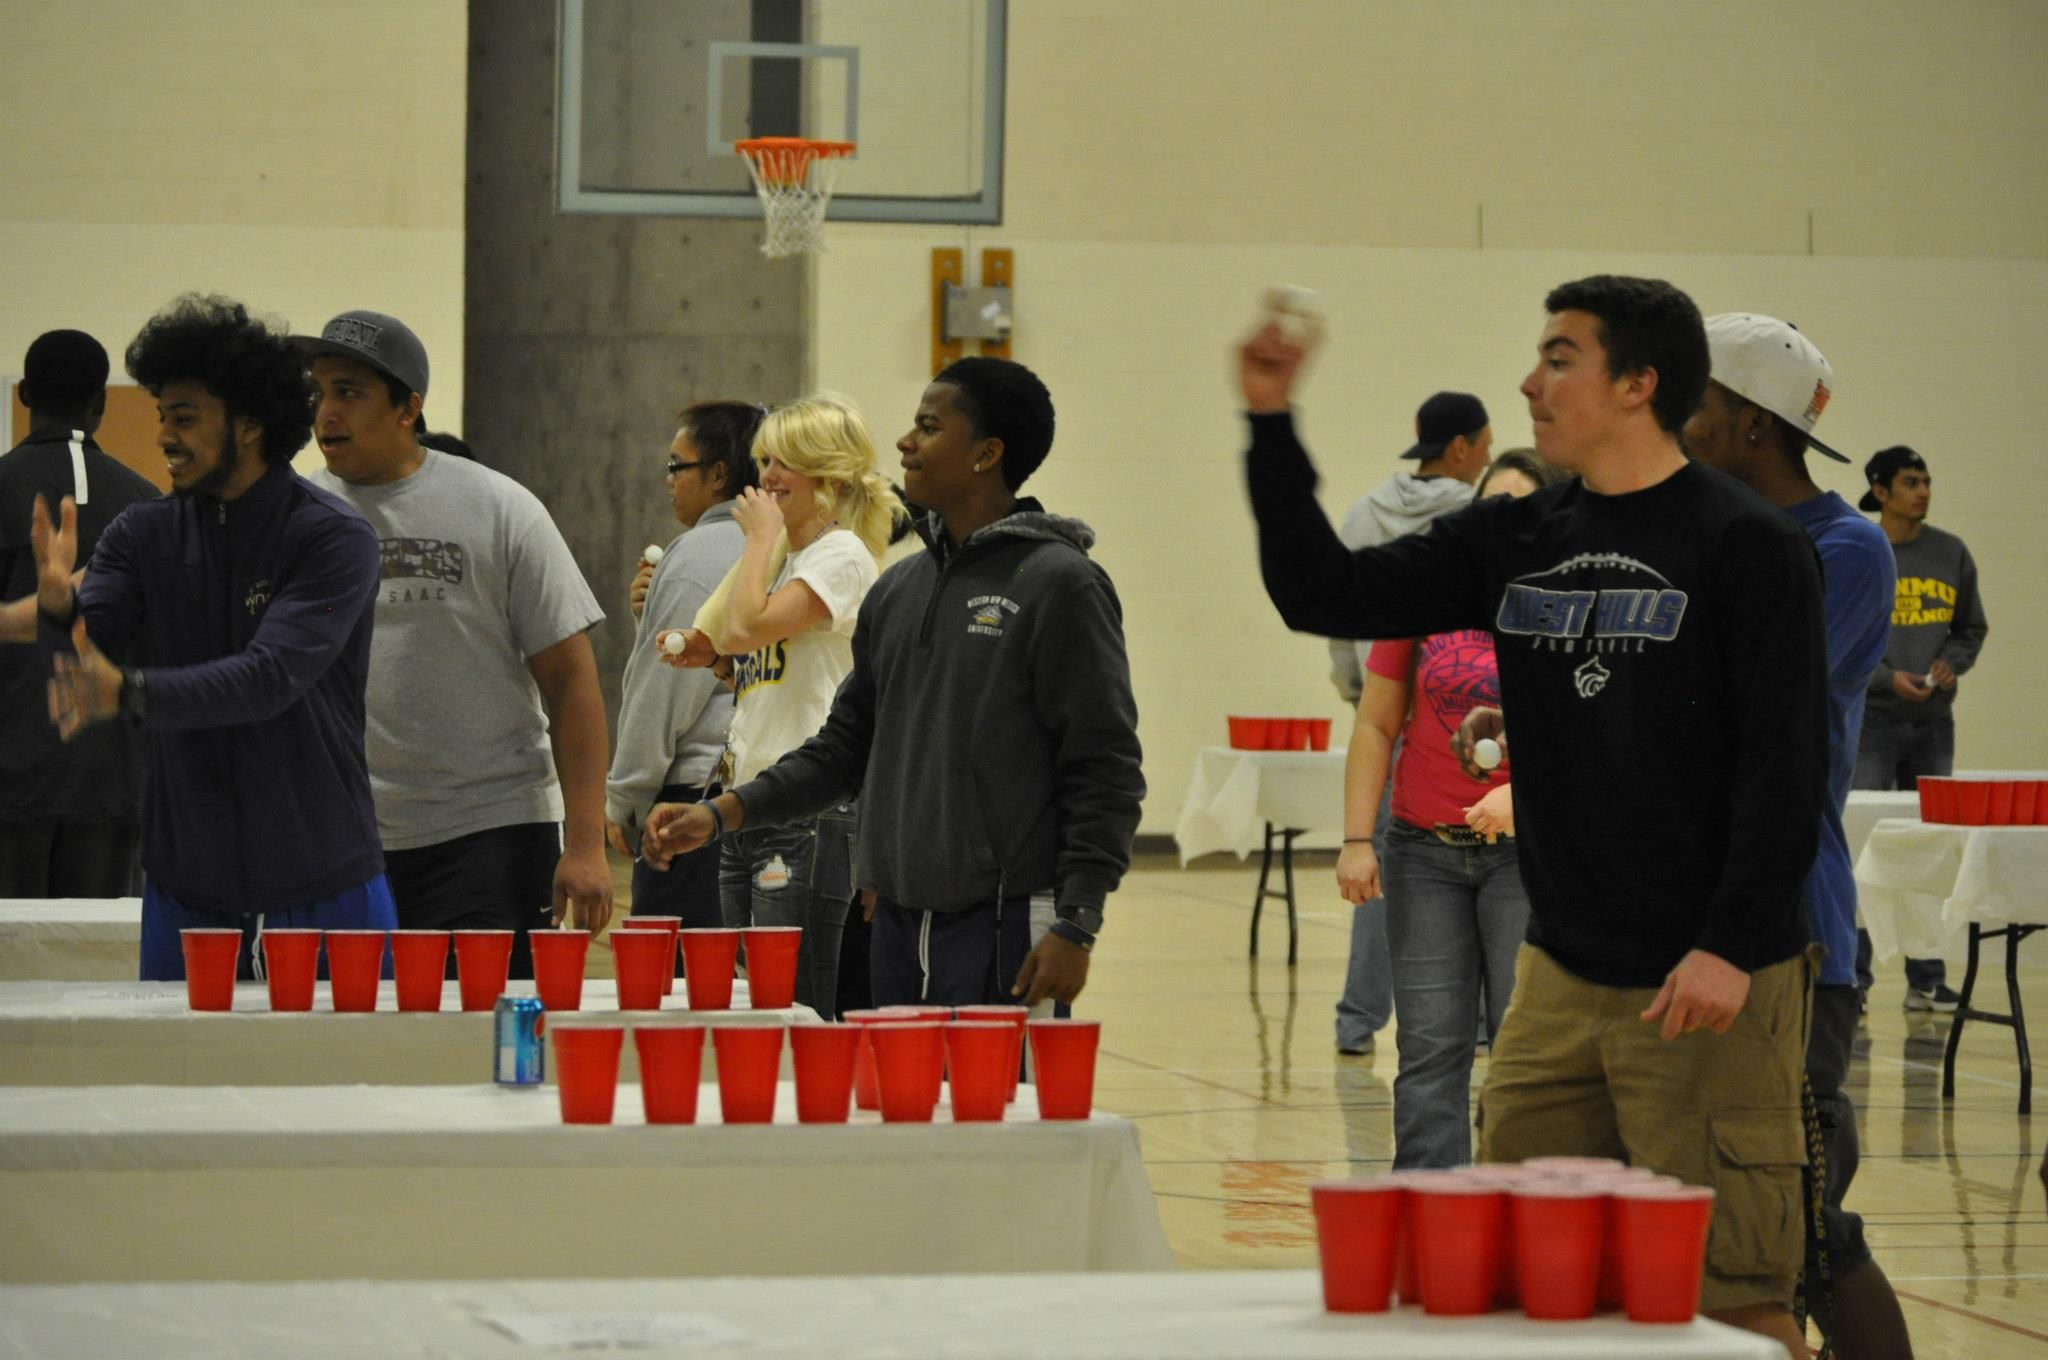 One giant water pong tournament